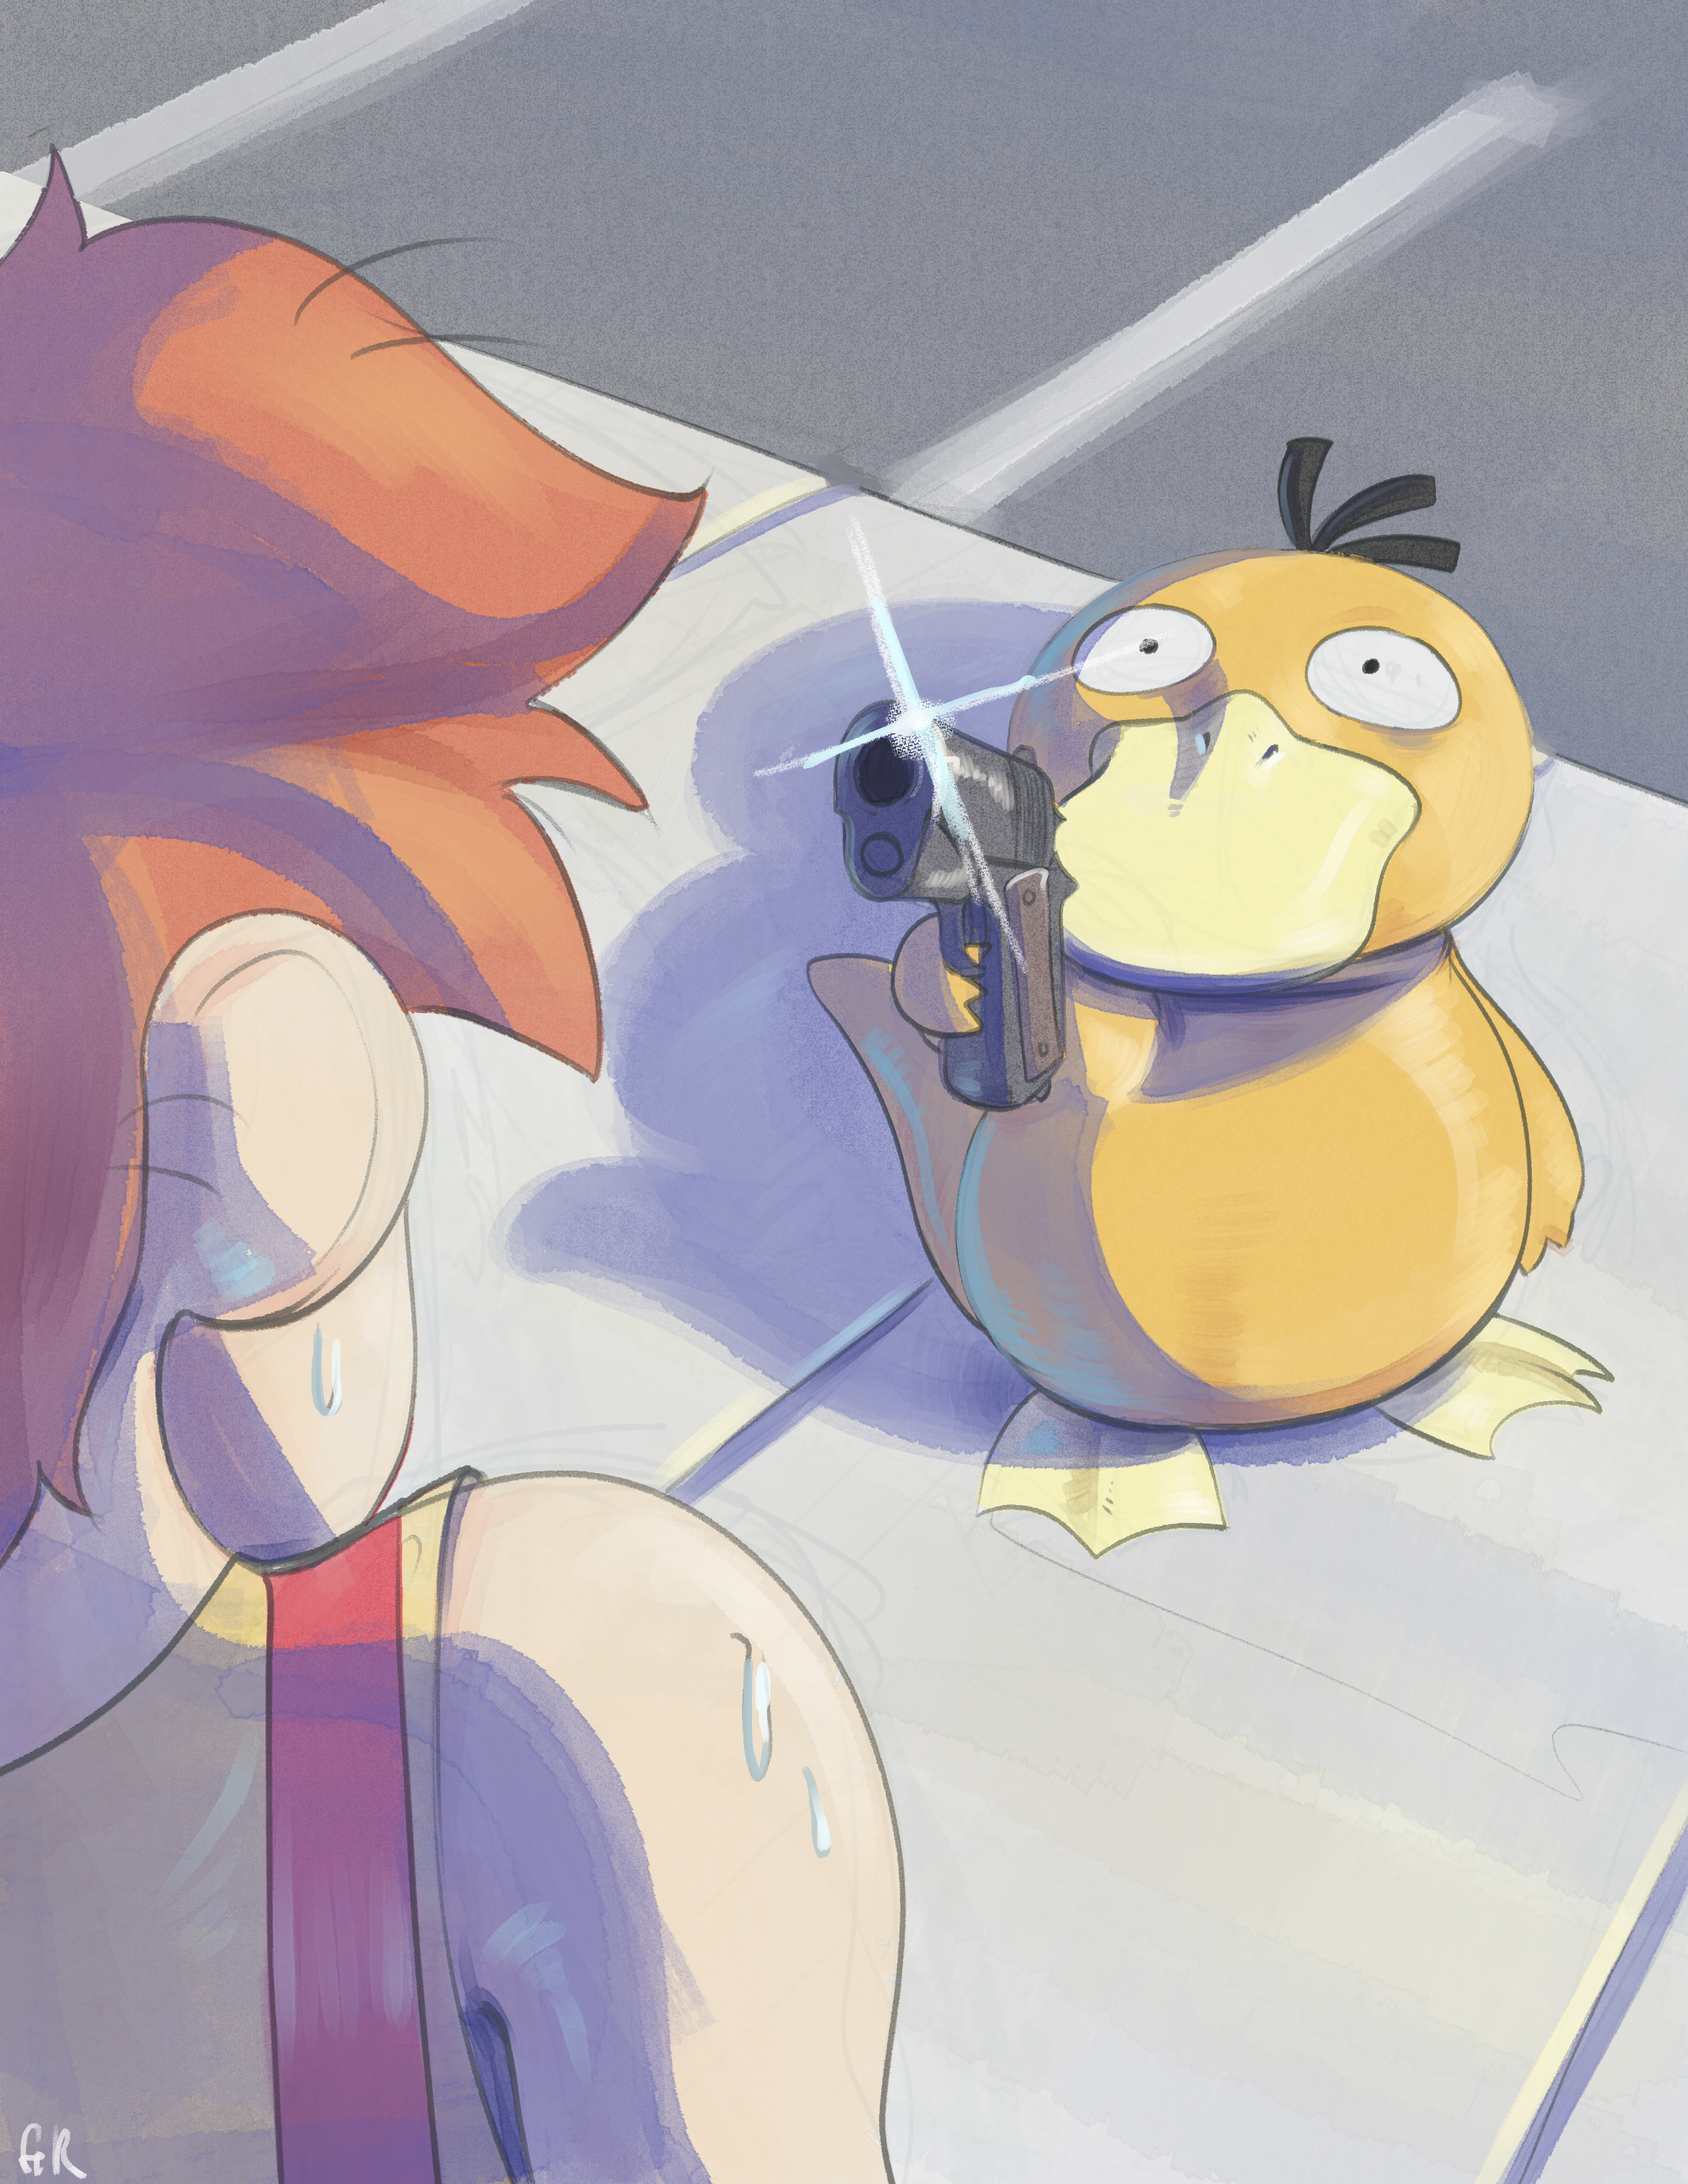 Psyduck with the Gat